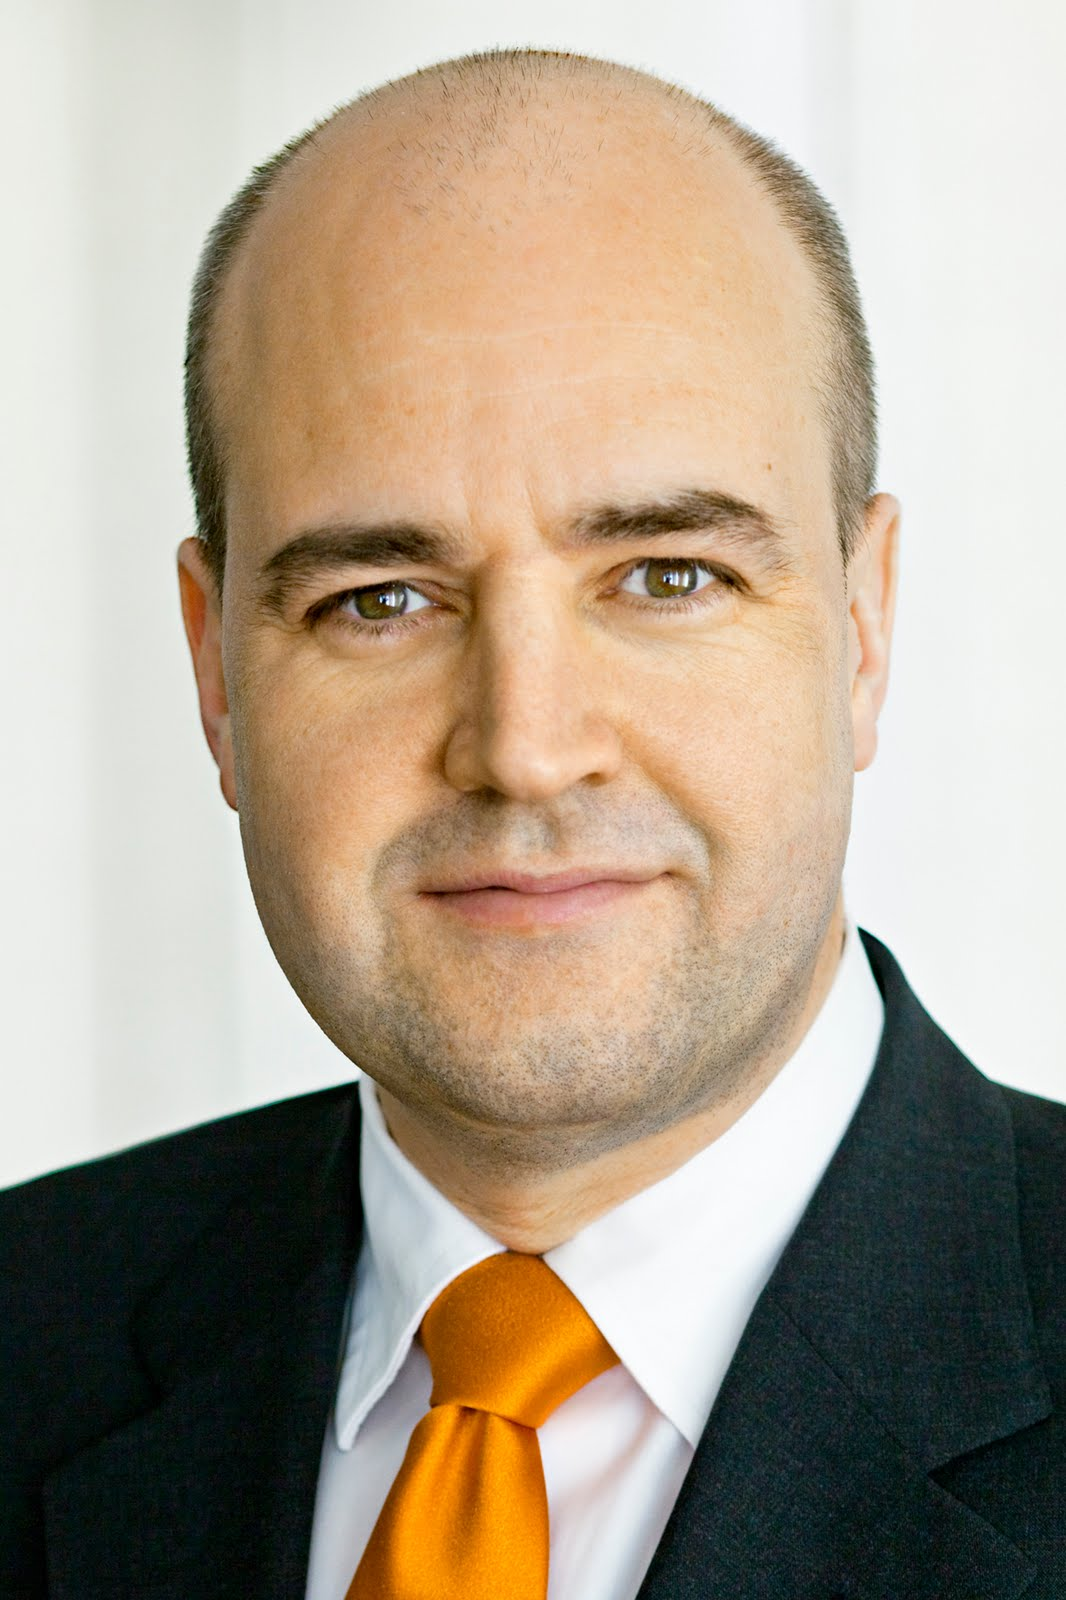 Fredrik Reinfeldt Net Worth